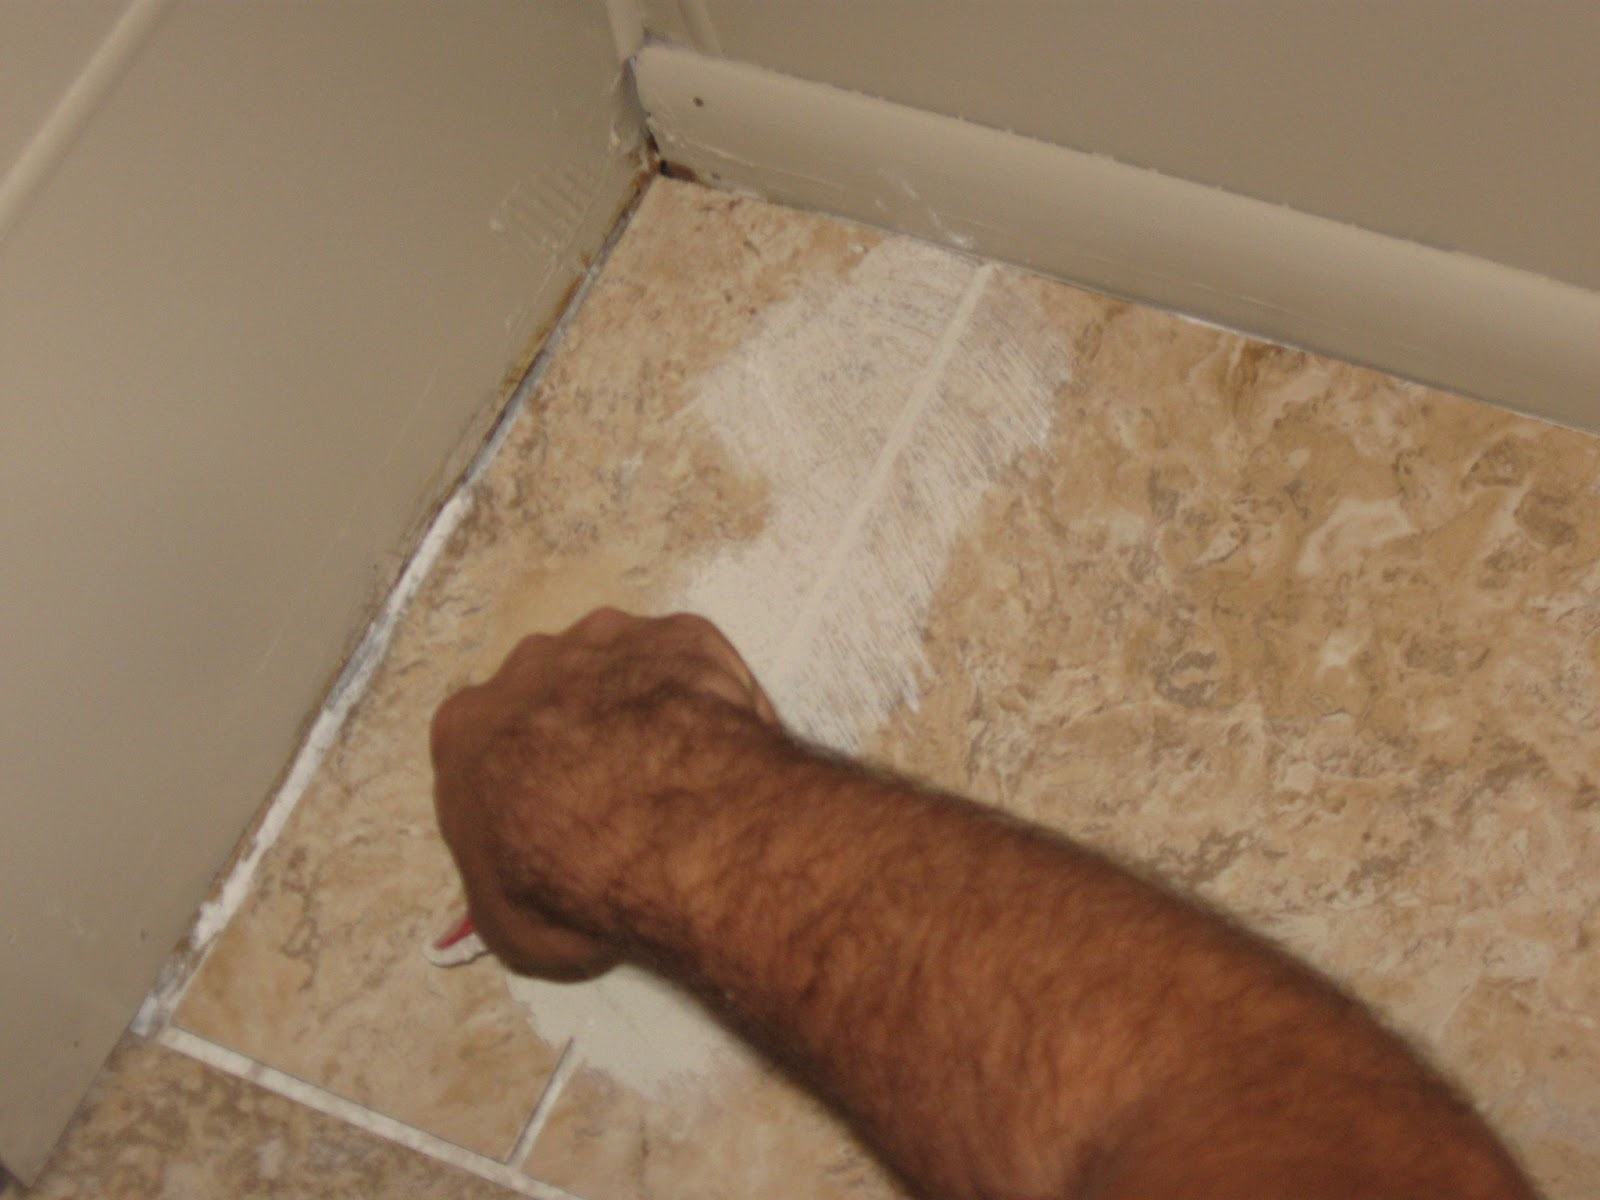 The rehomesteaders diy grouted vinyl tiling diy grouted vinyl tiling dailygadgetfo Choice Image